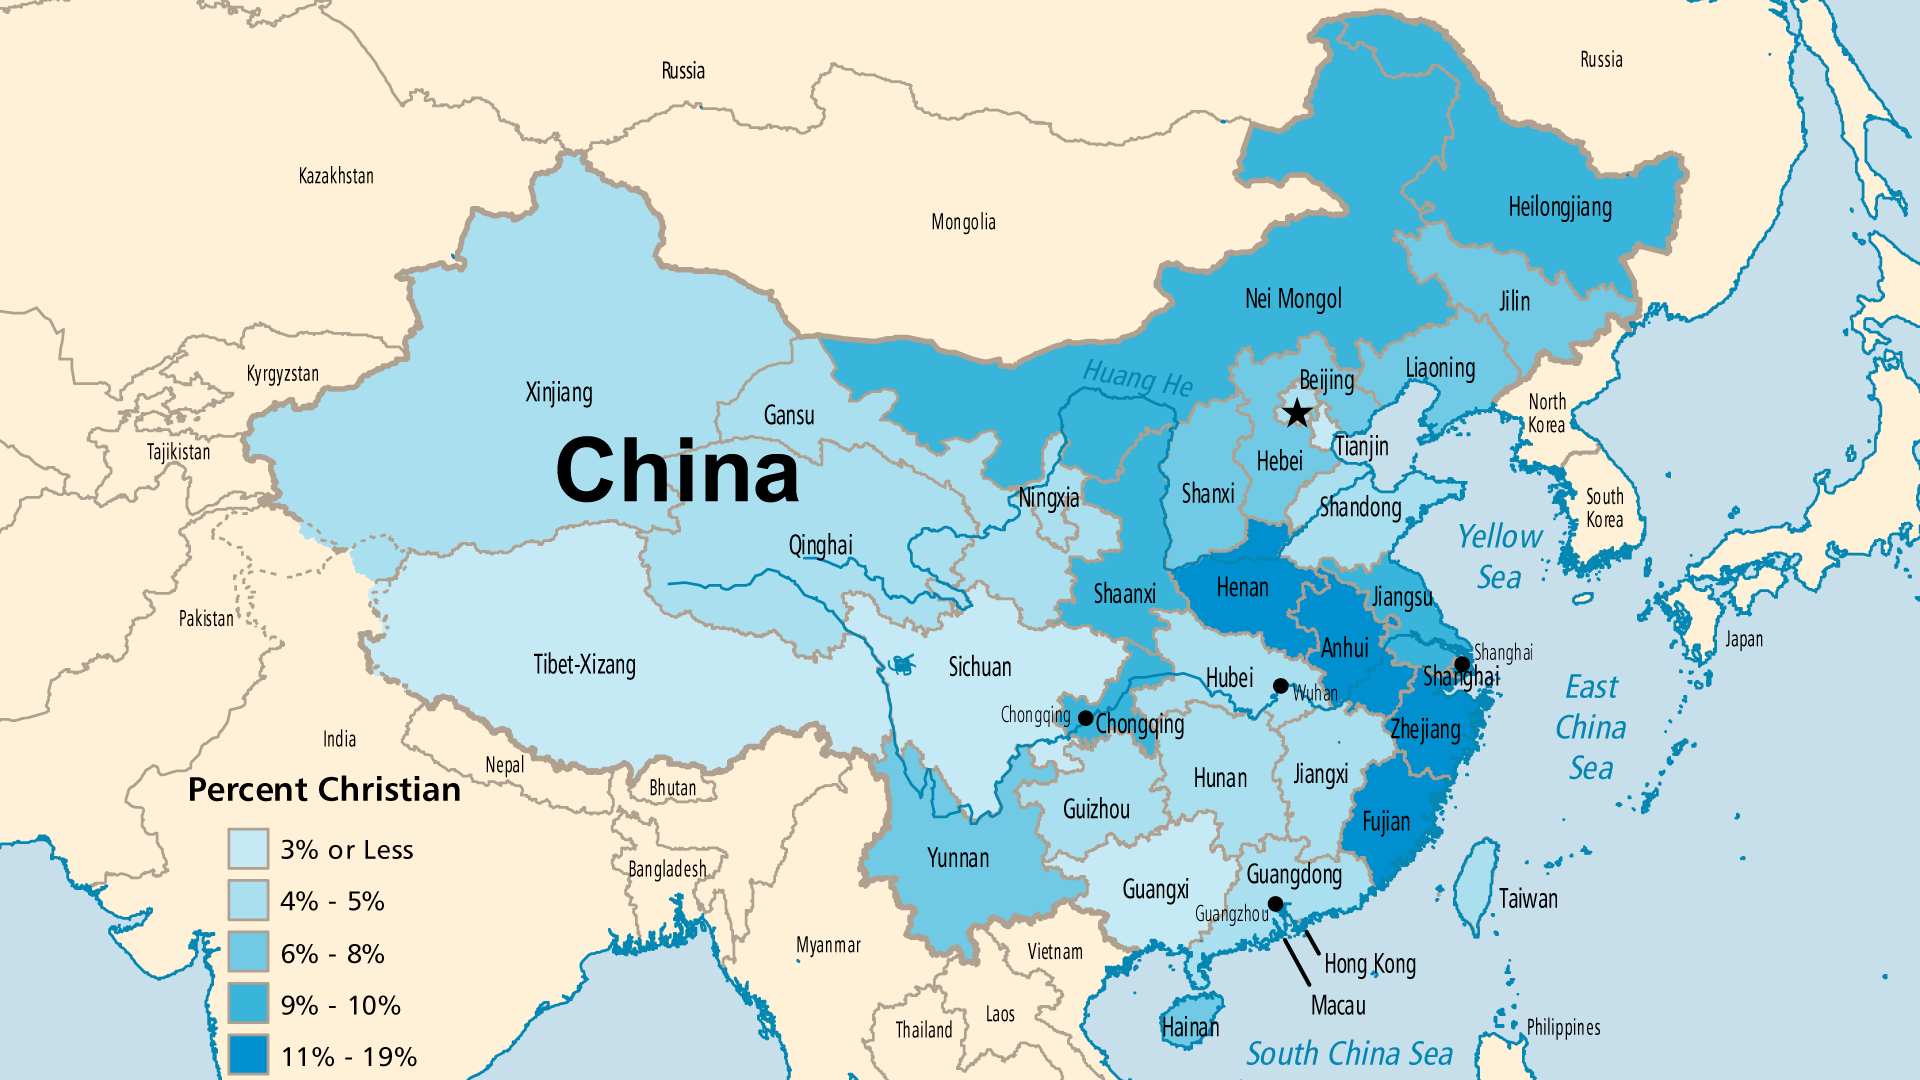 Detailed Map for People's Republic of China